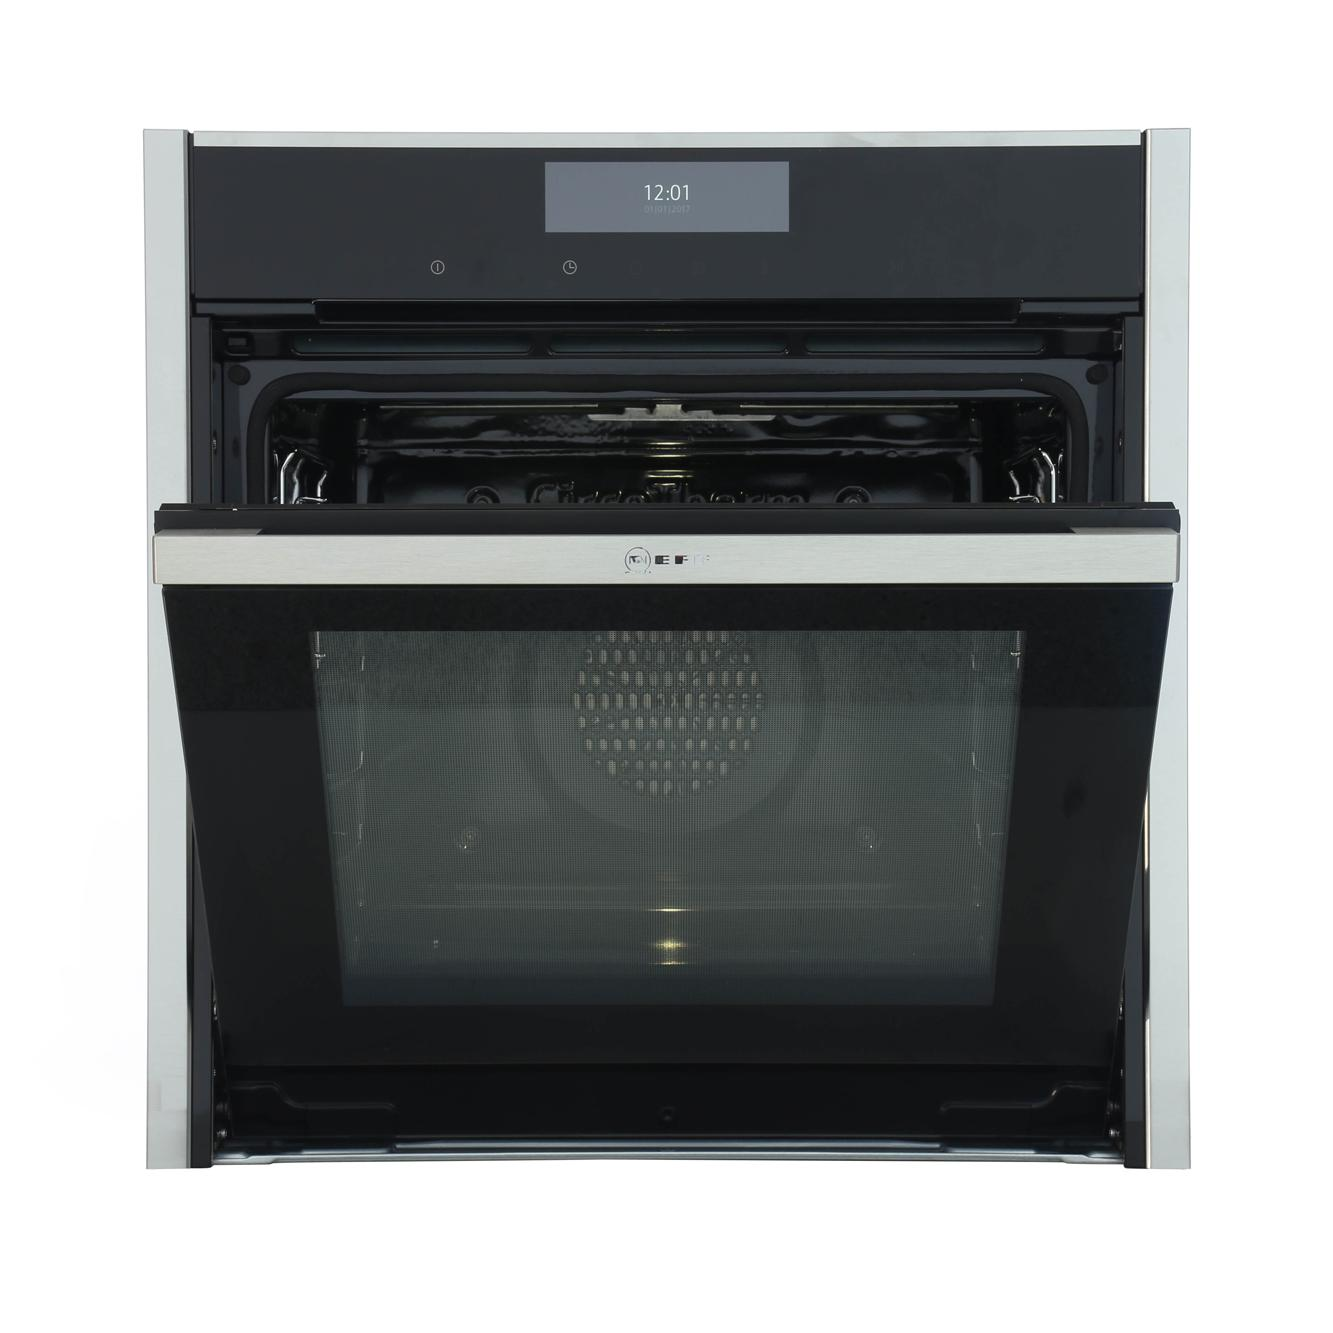 buy neff b58ct68n0b single built in electric oven marks. Black Bedroom Furniture Sets. Home Design Ideas